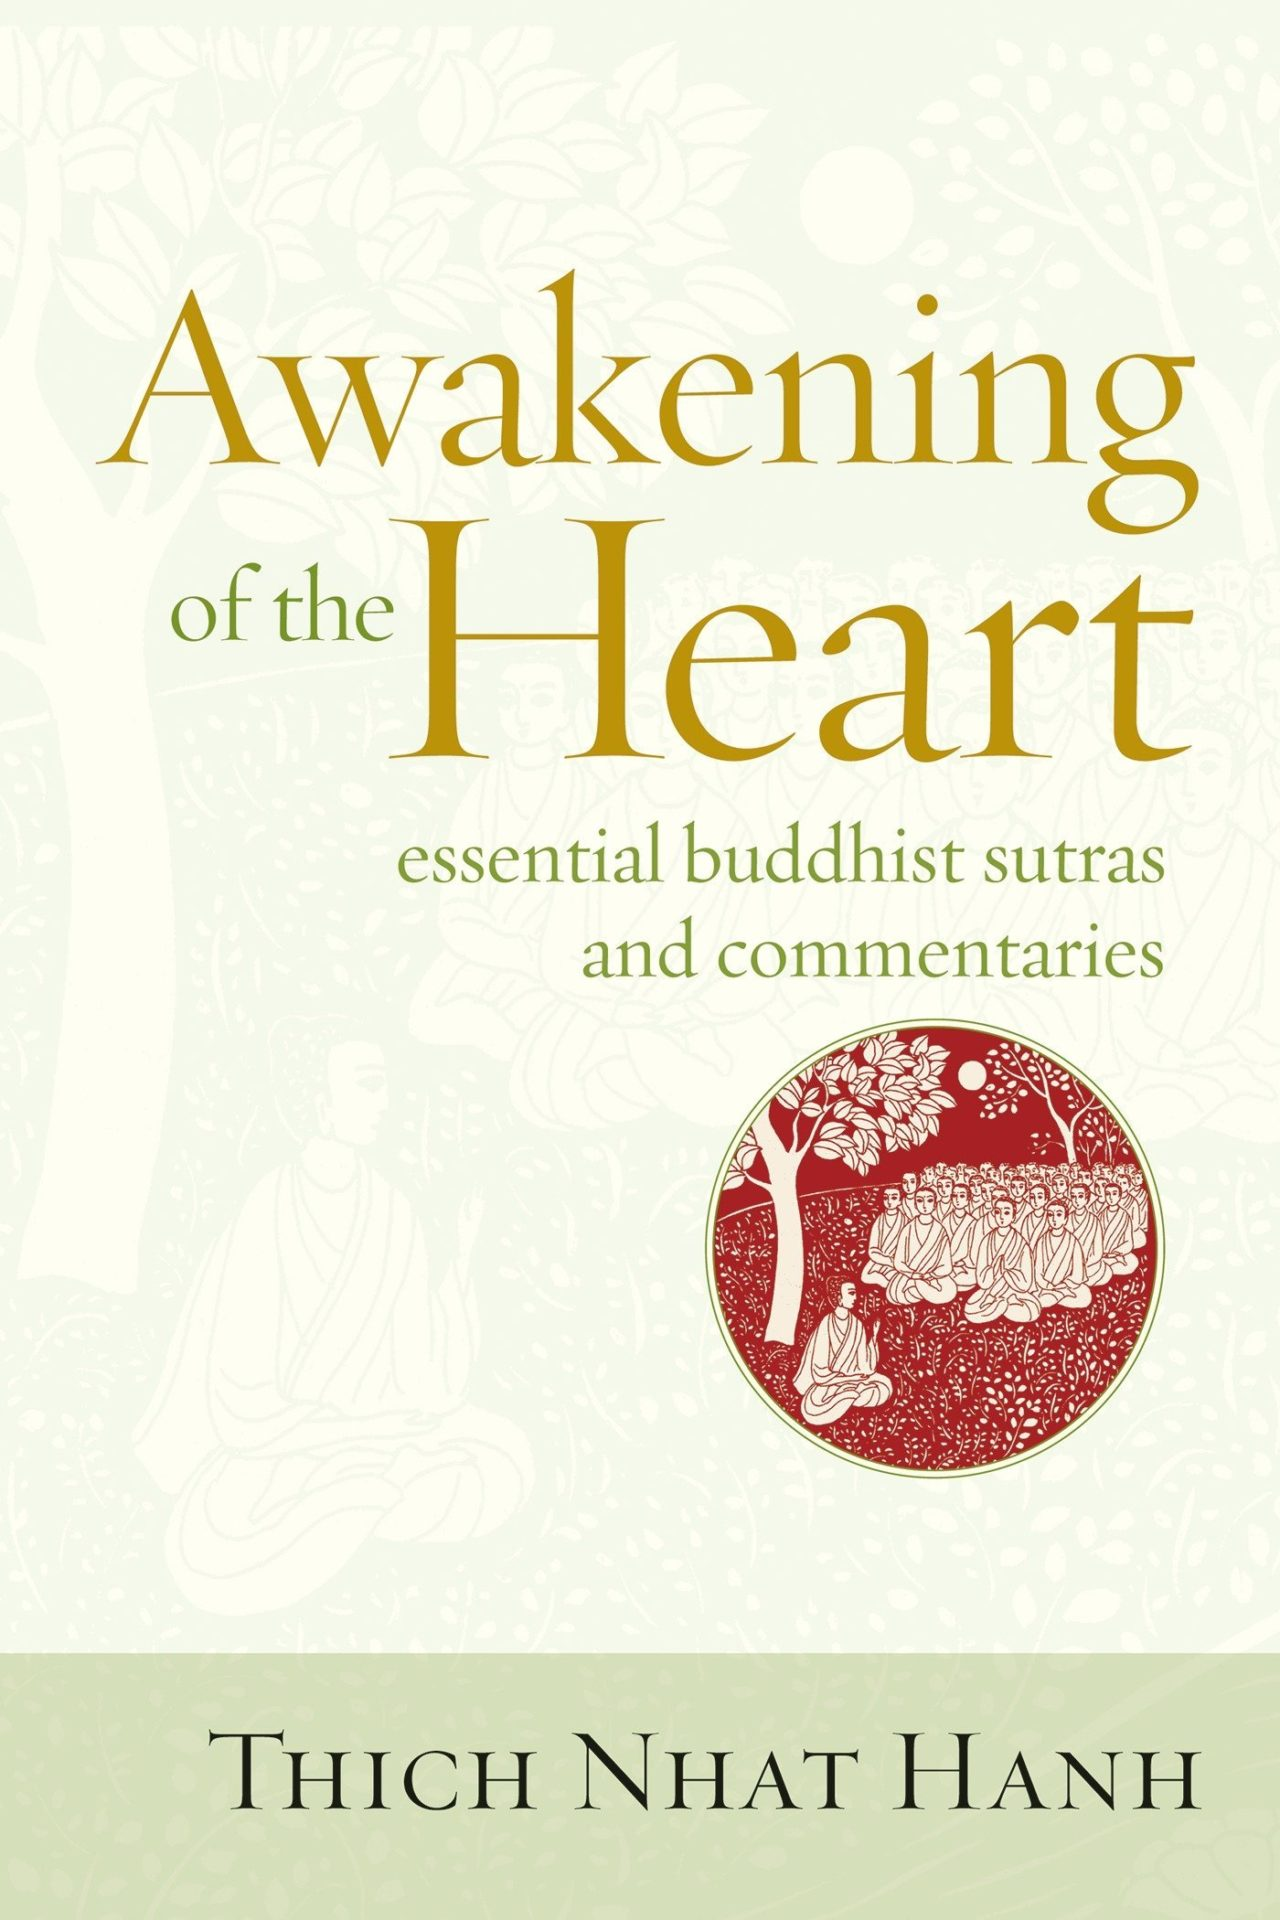 awakening-of-the-heart-279x418